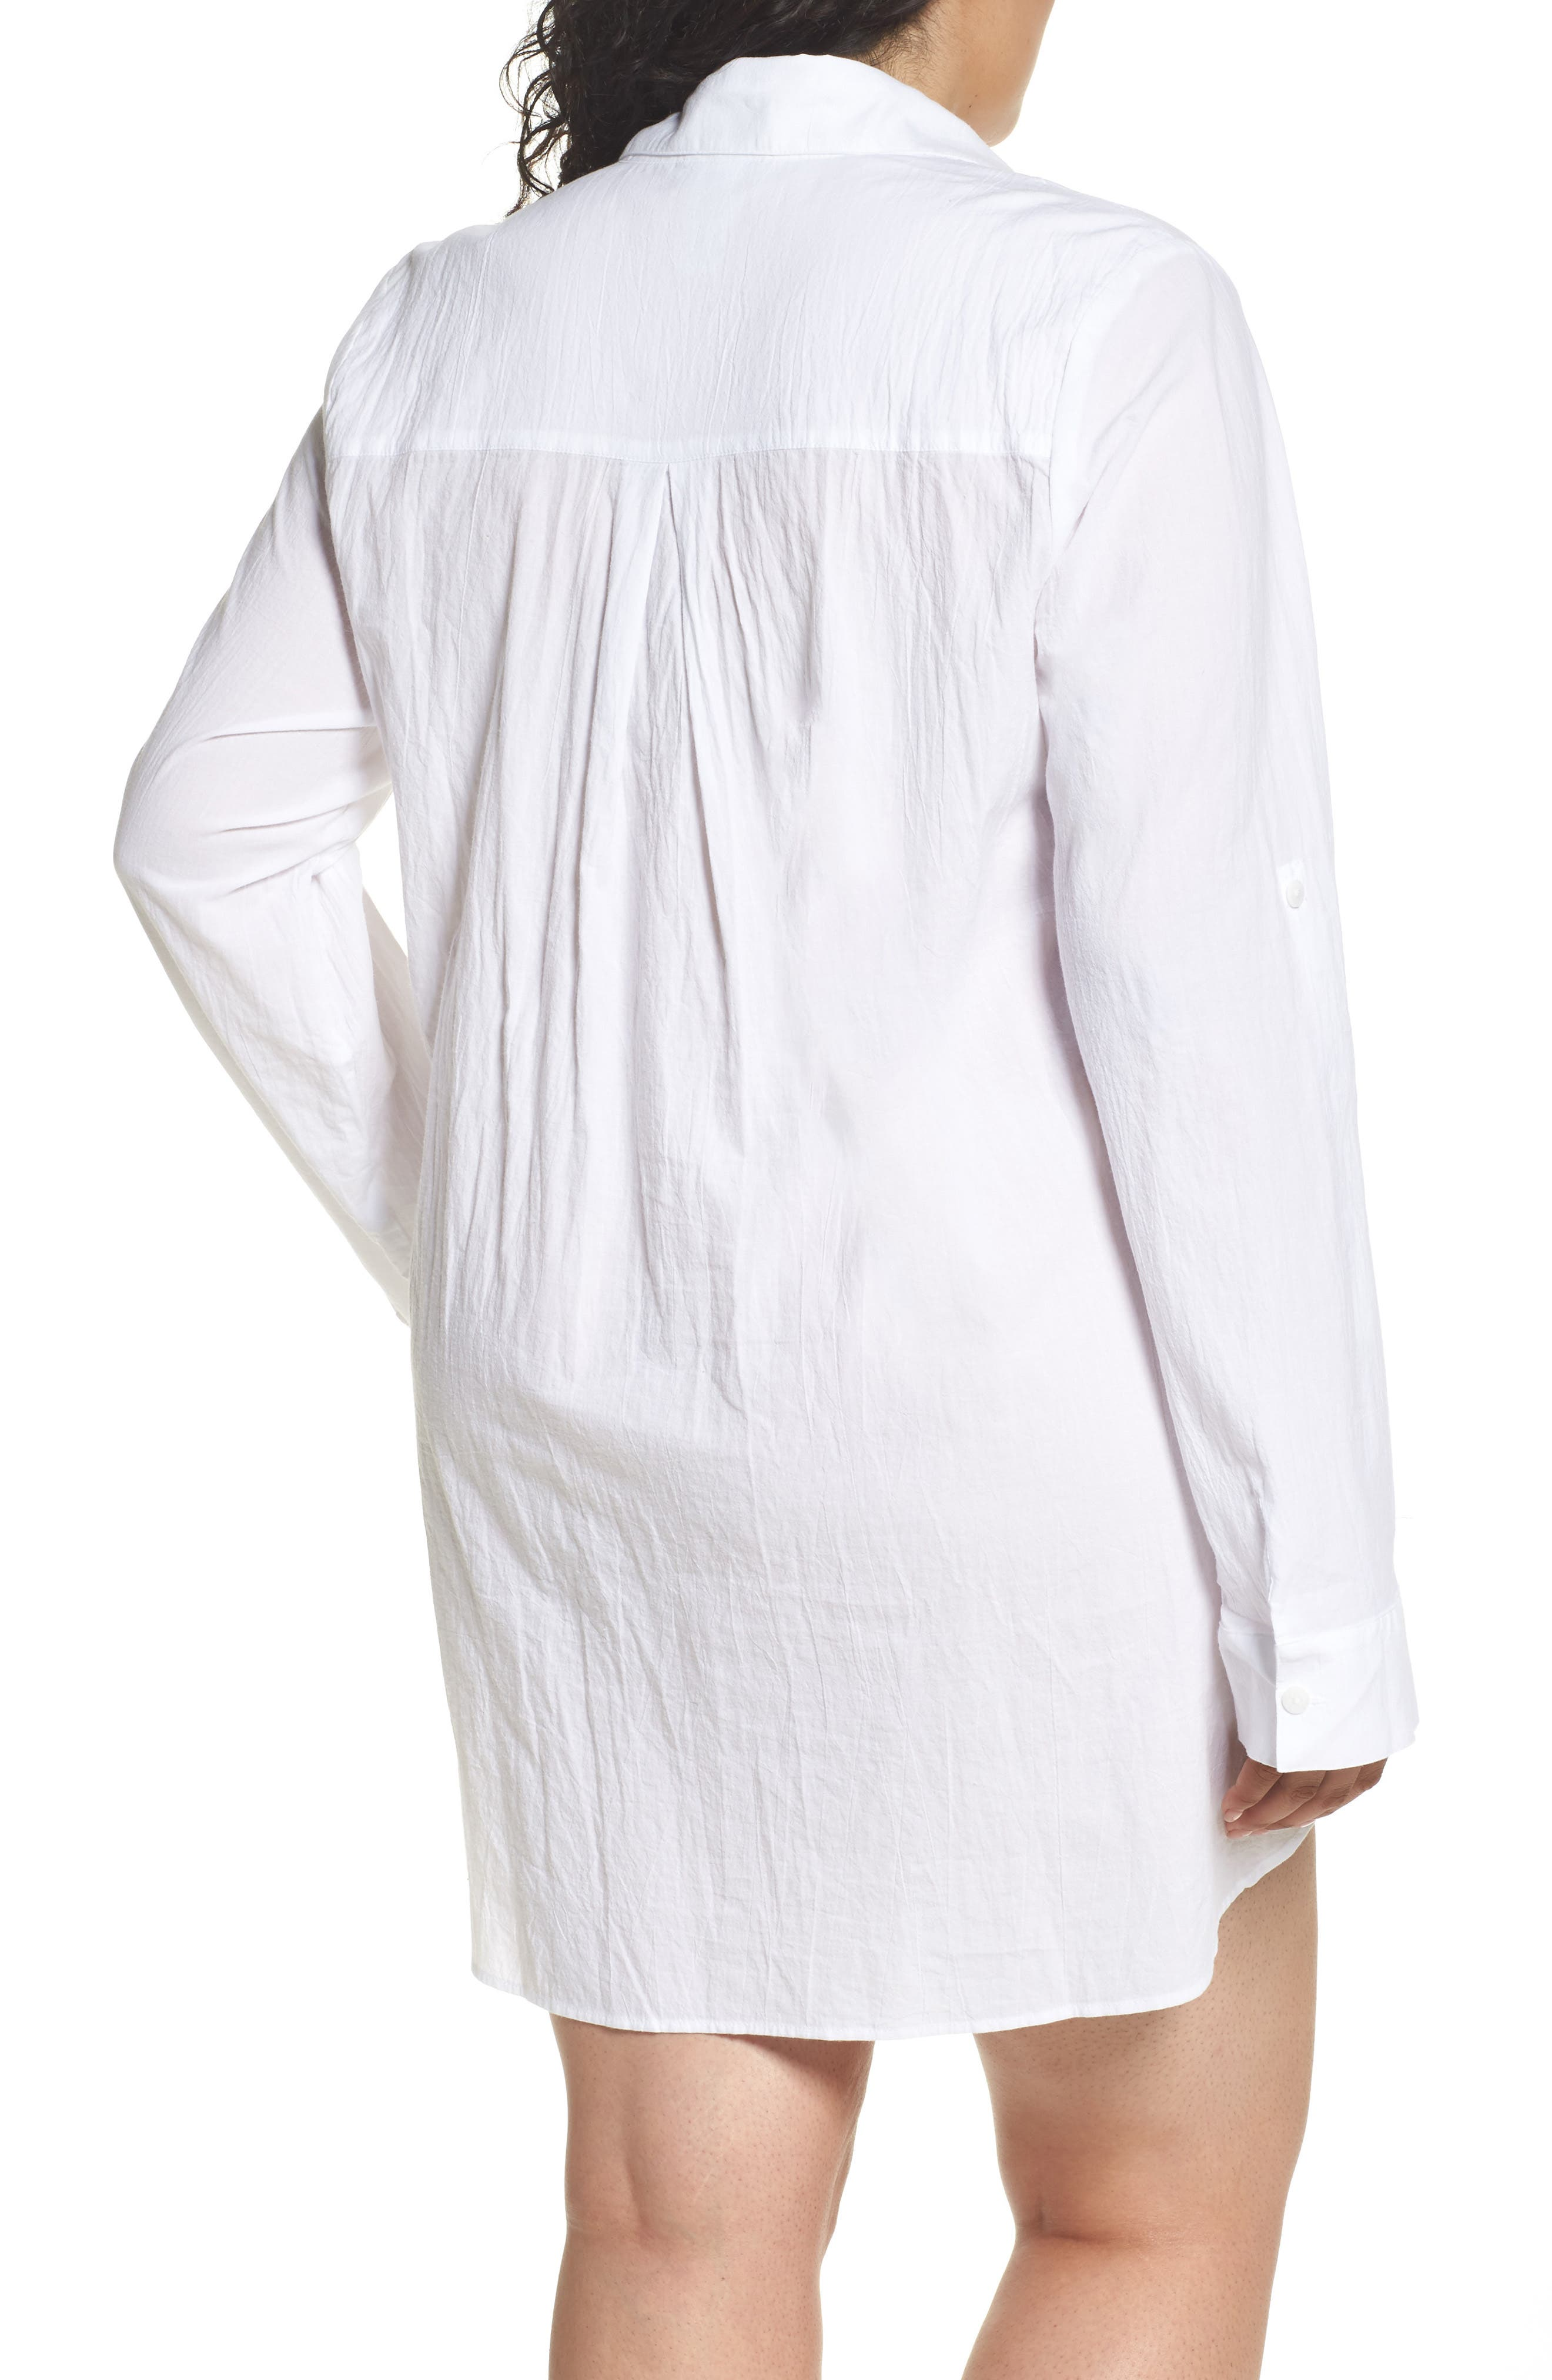 TOMMY BAHAMA,                             Boyfriend Shirt Cover-Up,                             Alternate thumbnail 2, color,                             WHITE